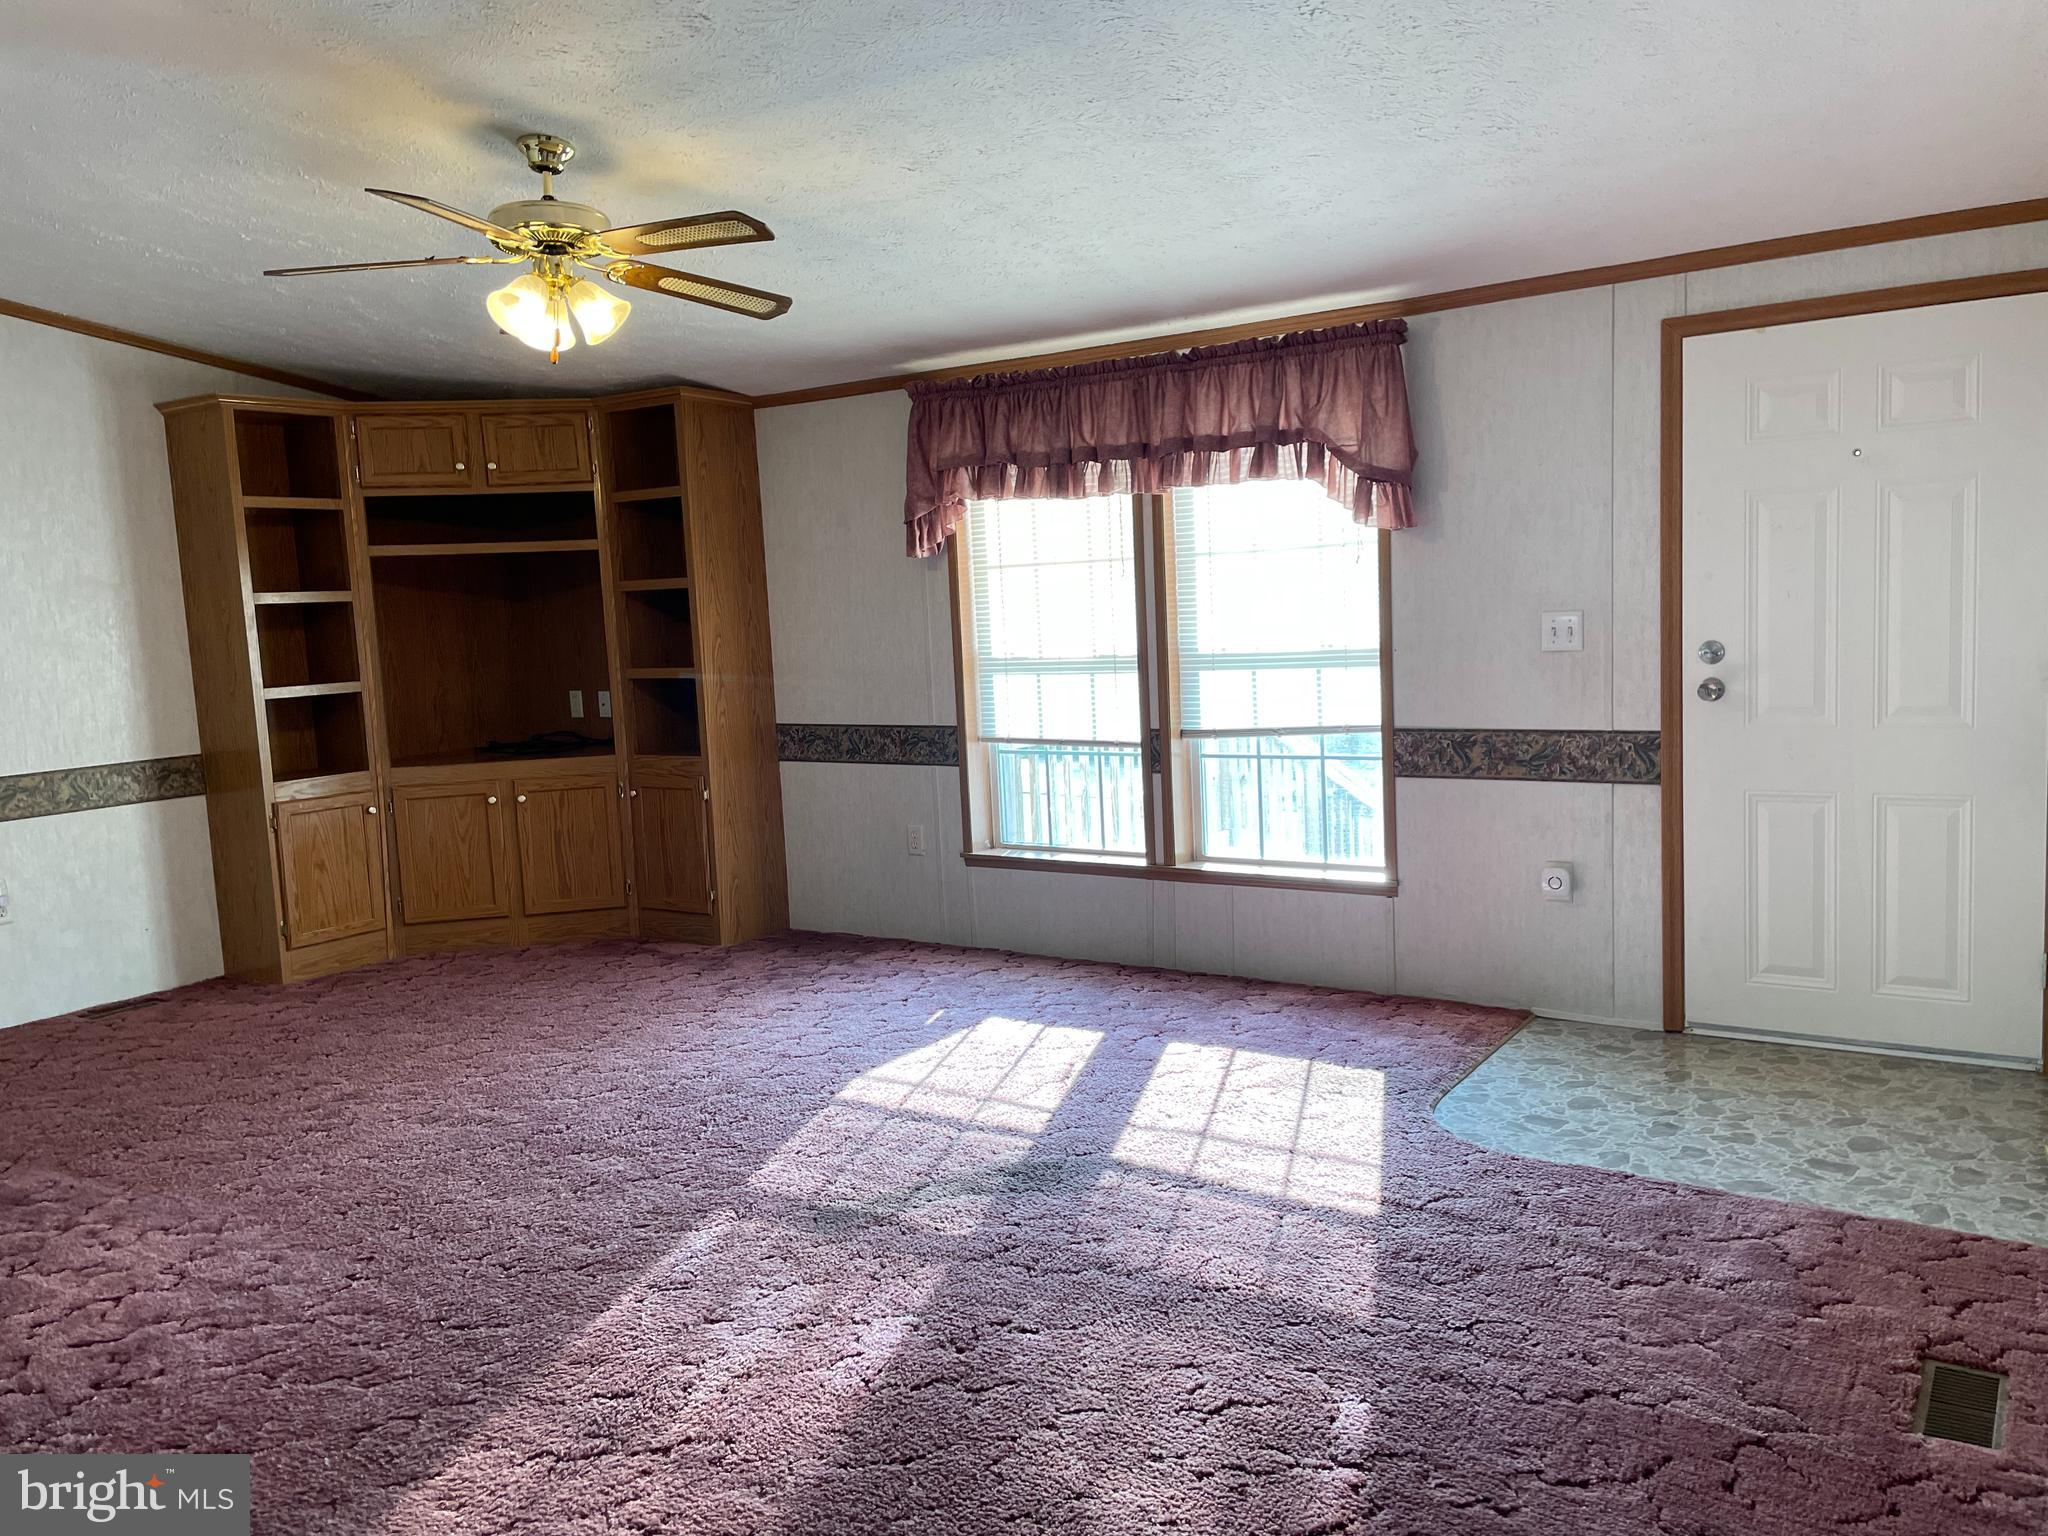 Livingroom with built in entertainment center